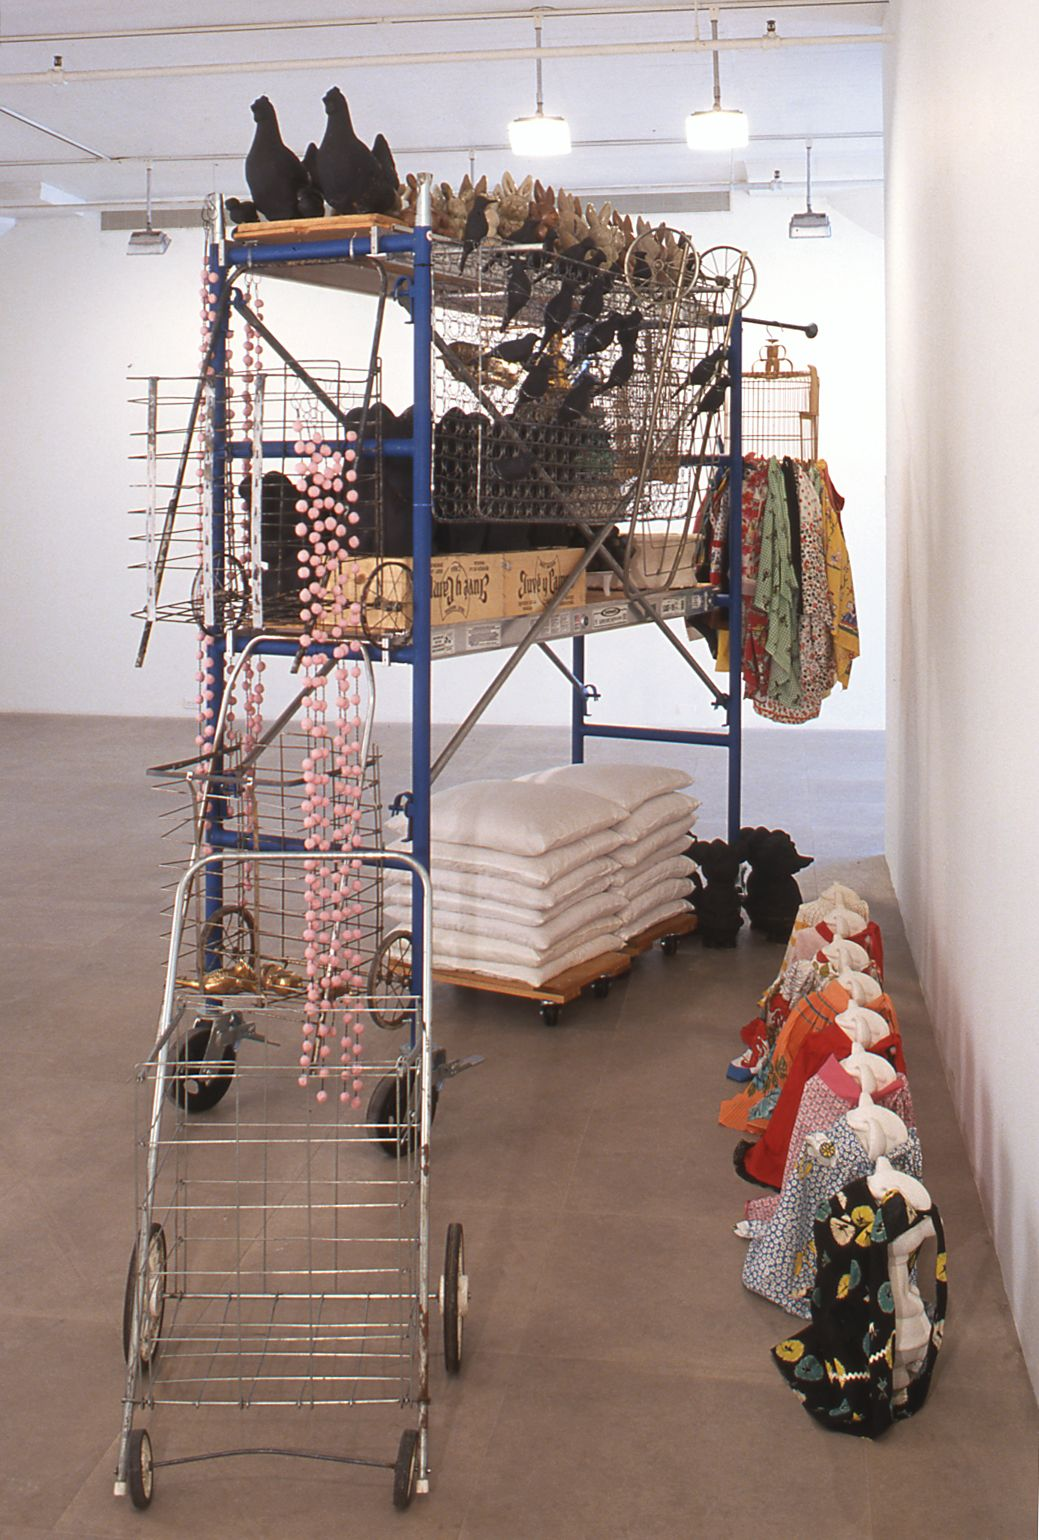 Yoko Inoue,  Stories on the Move II, 2000, mixed media, ceramics, fabric, steel scaffolding, dimensions variable